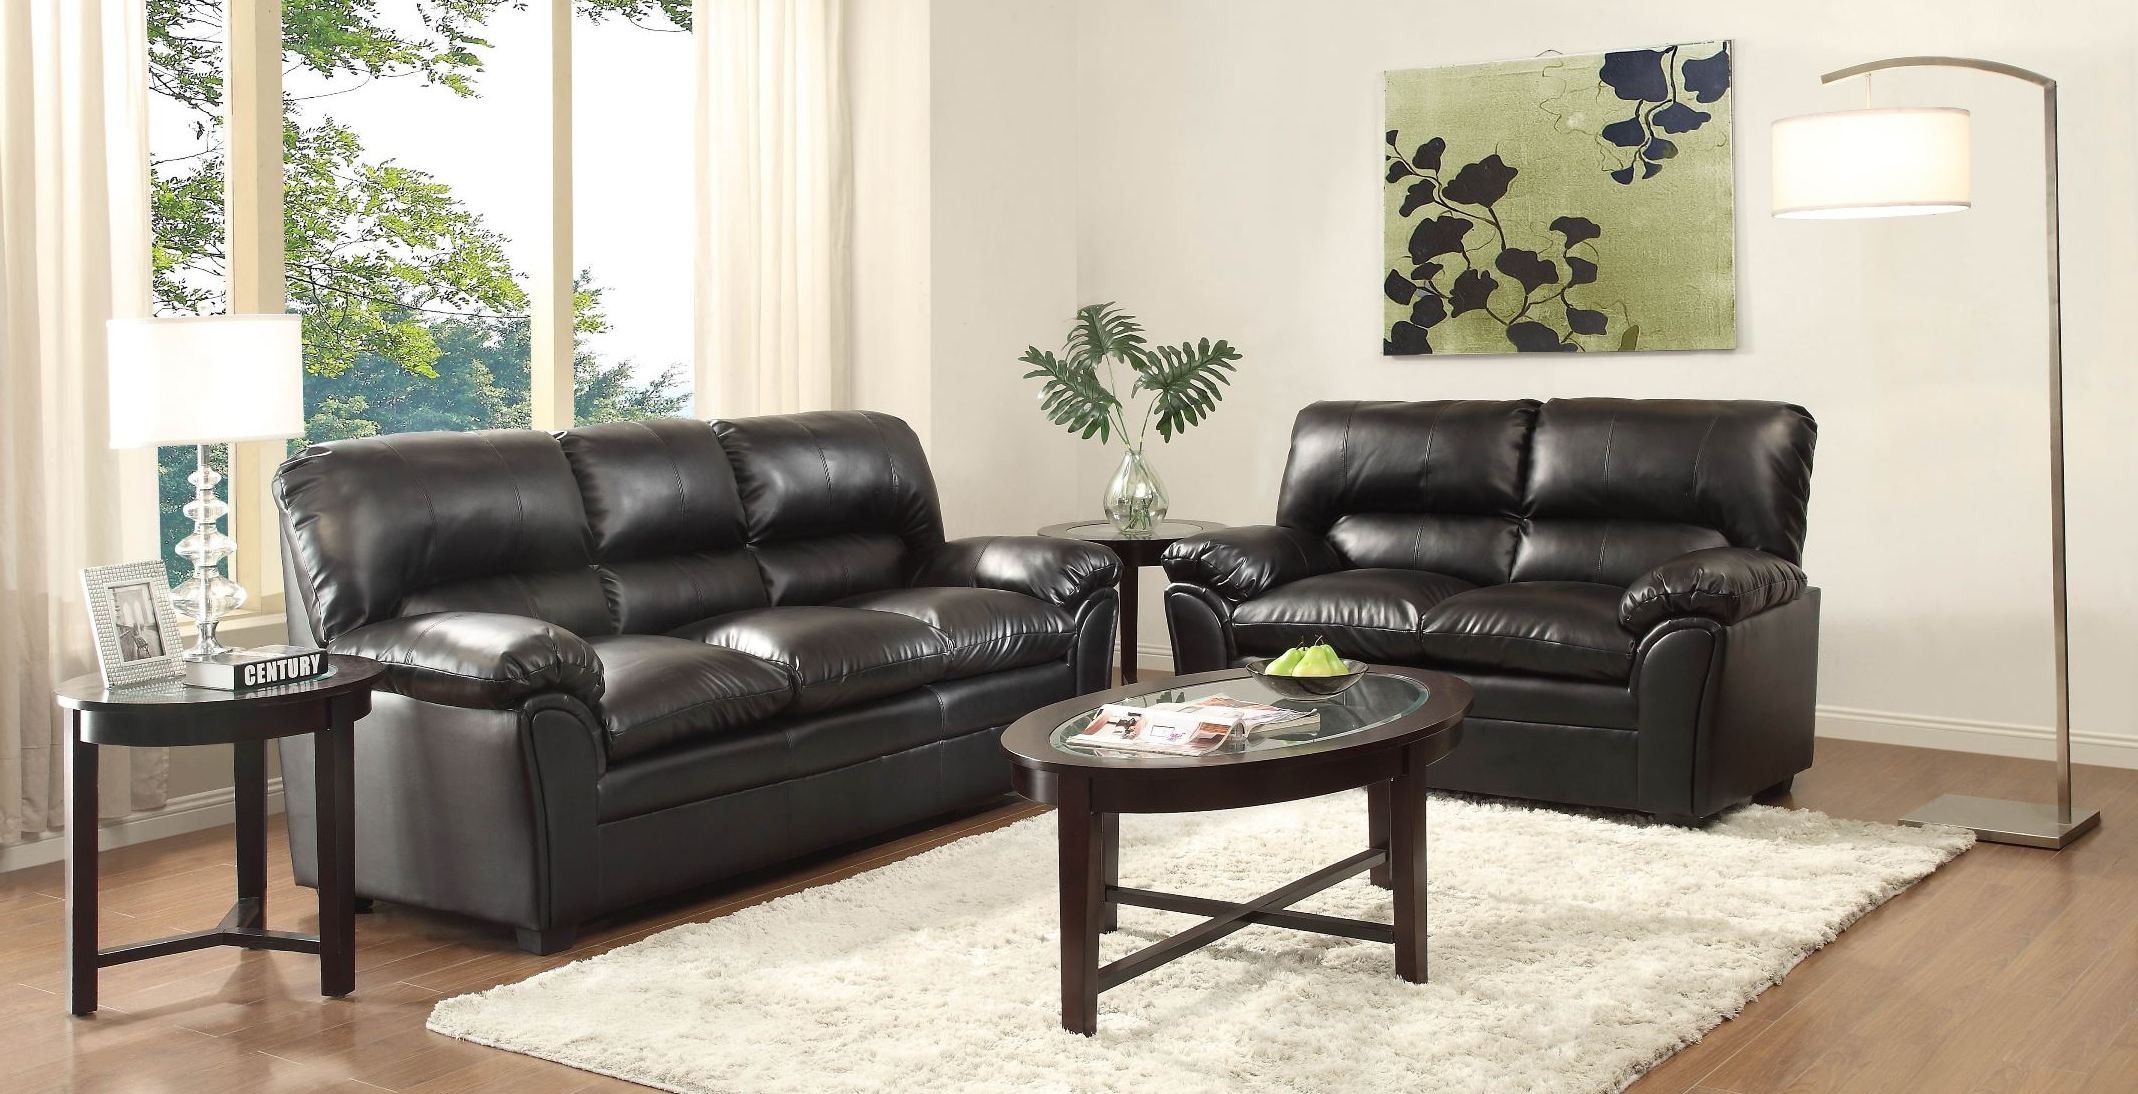 Talon Black Living Room Set From Homelegance 8511bk 3